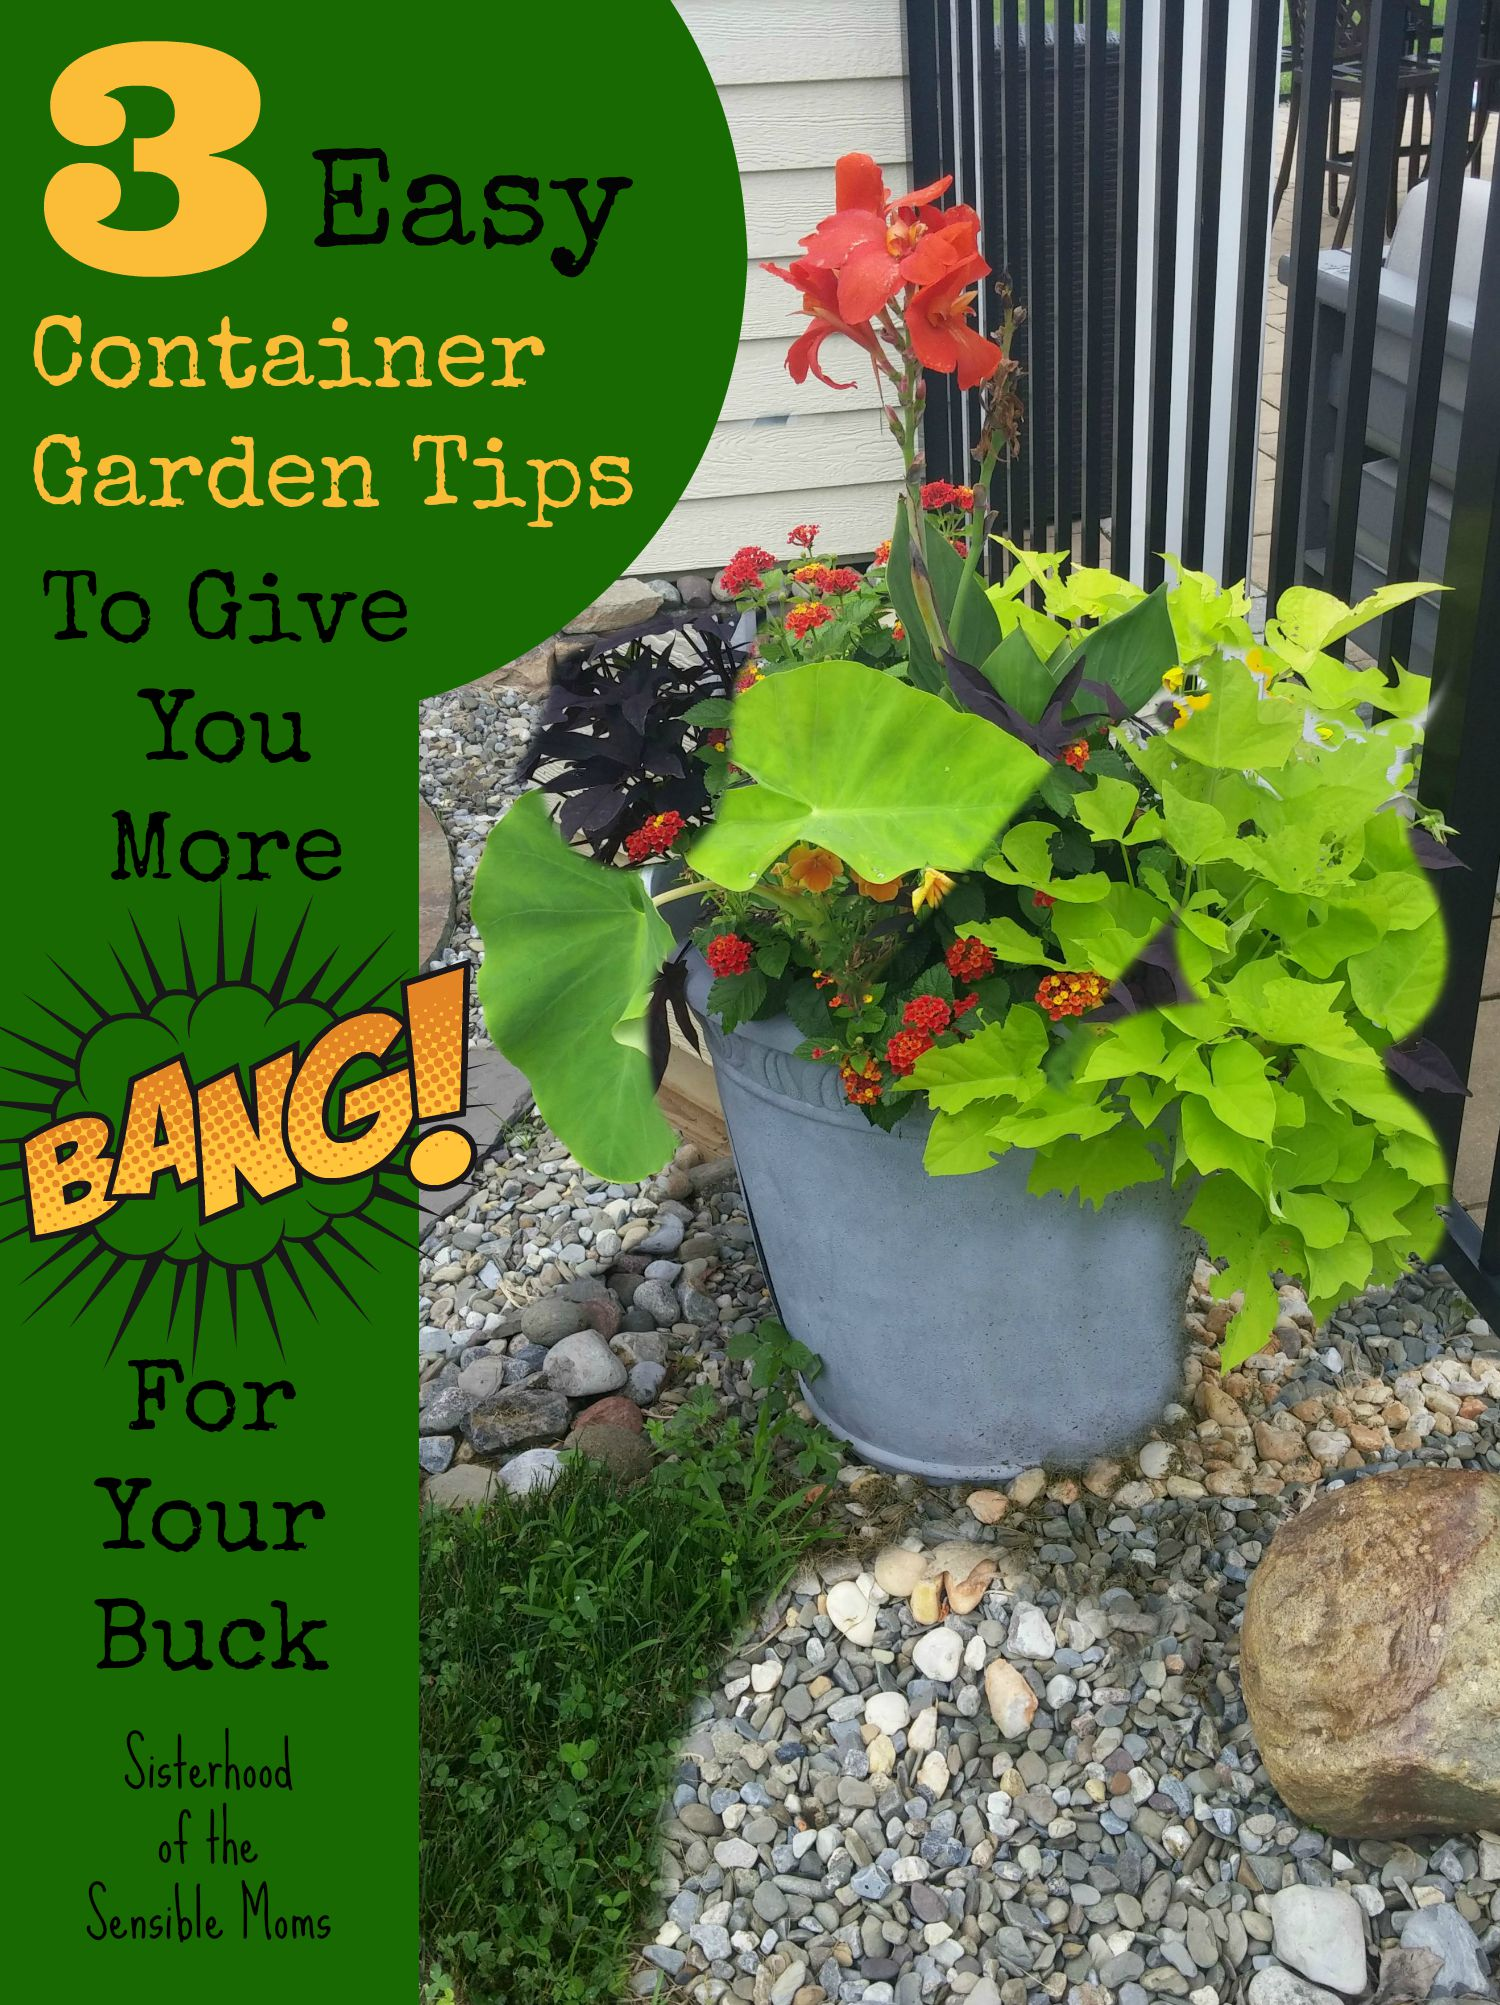 Three Easy Container Garden Tips to Give You More Bang for Your Buck | DIY Garden Design Principles | Sisterhood of the Sensible Moms